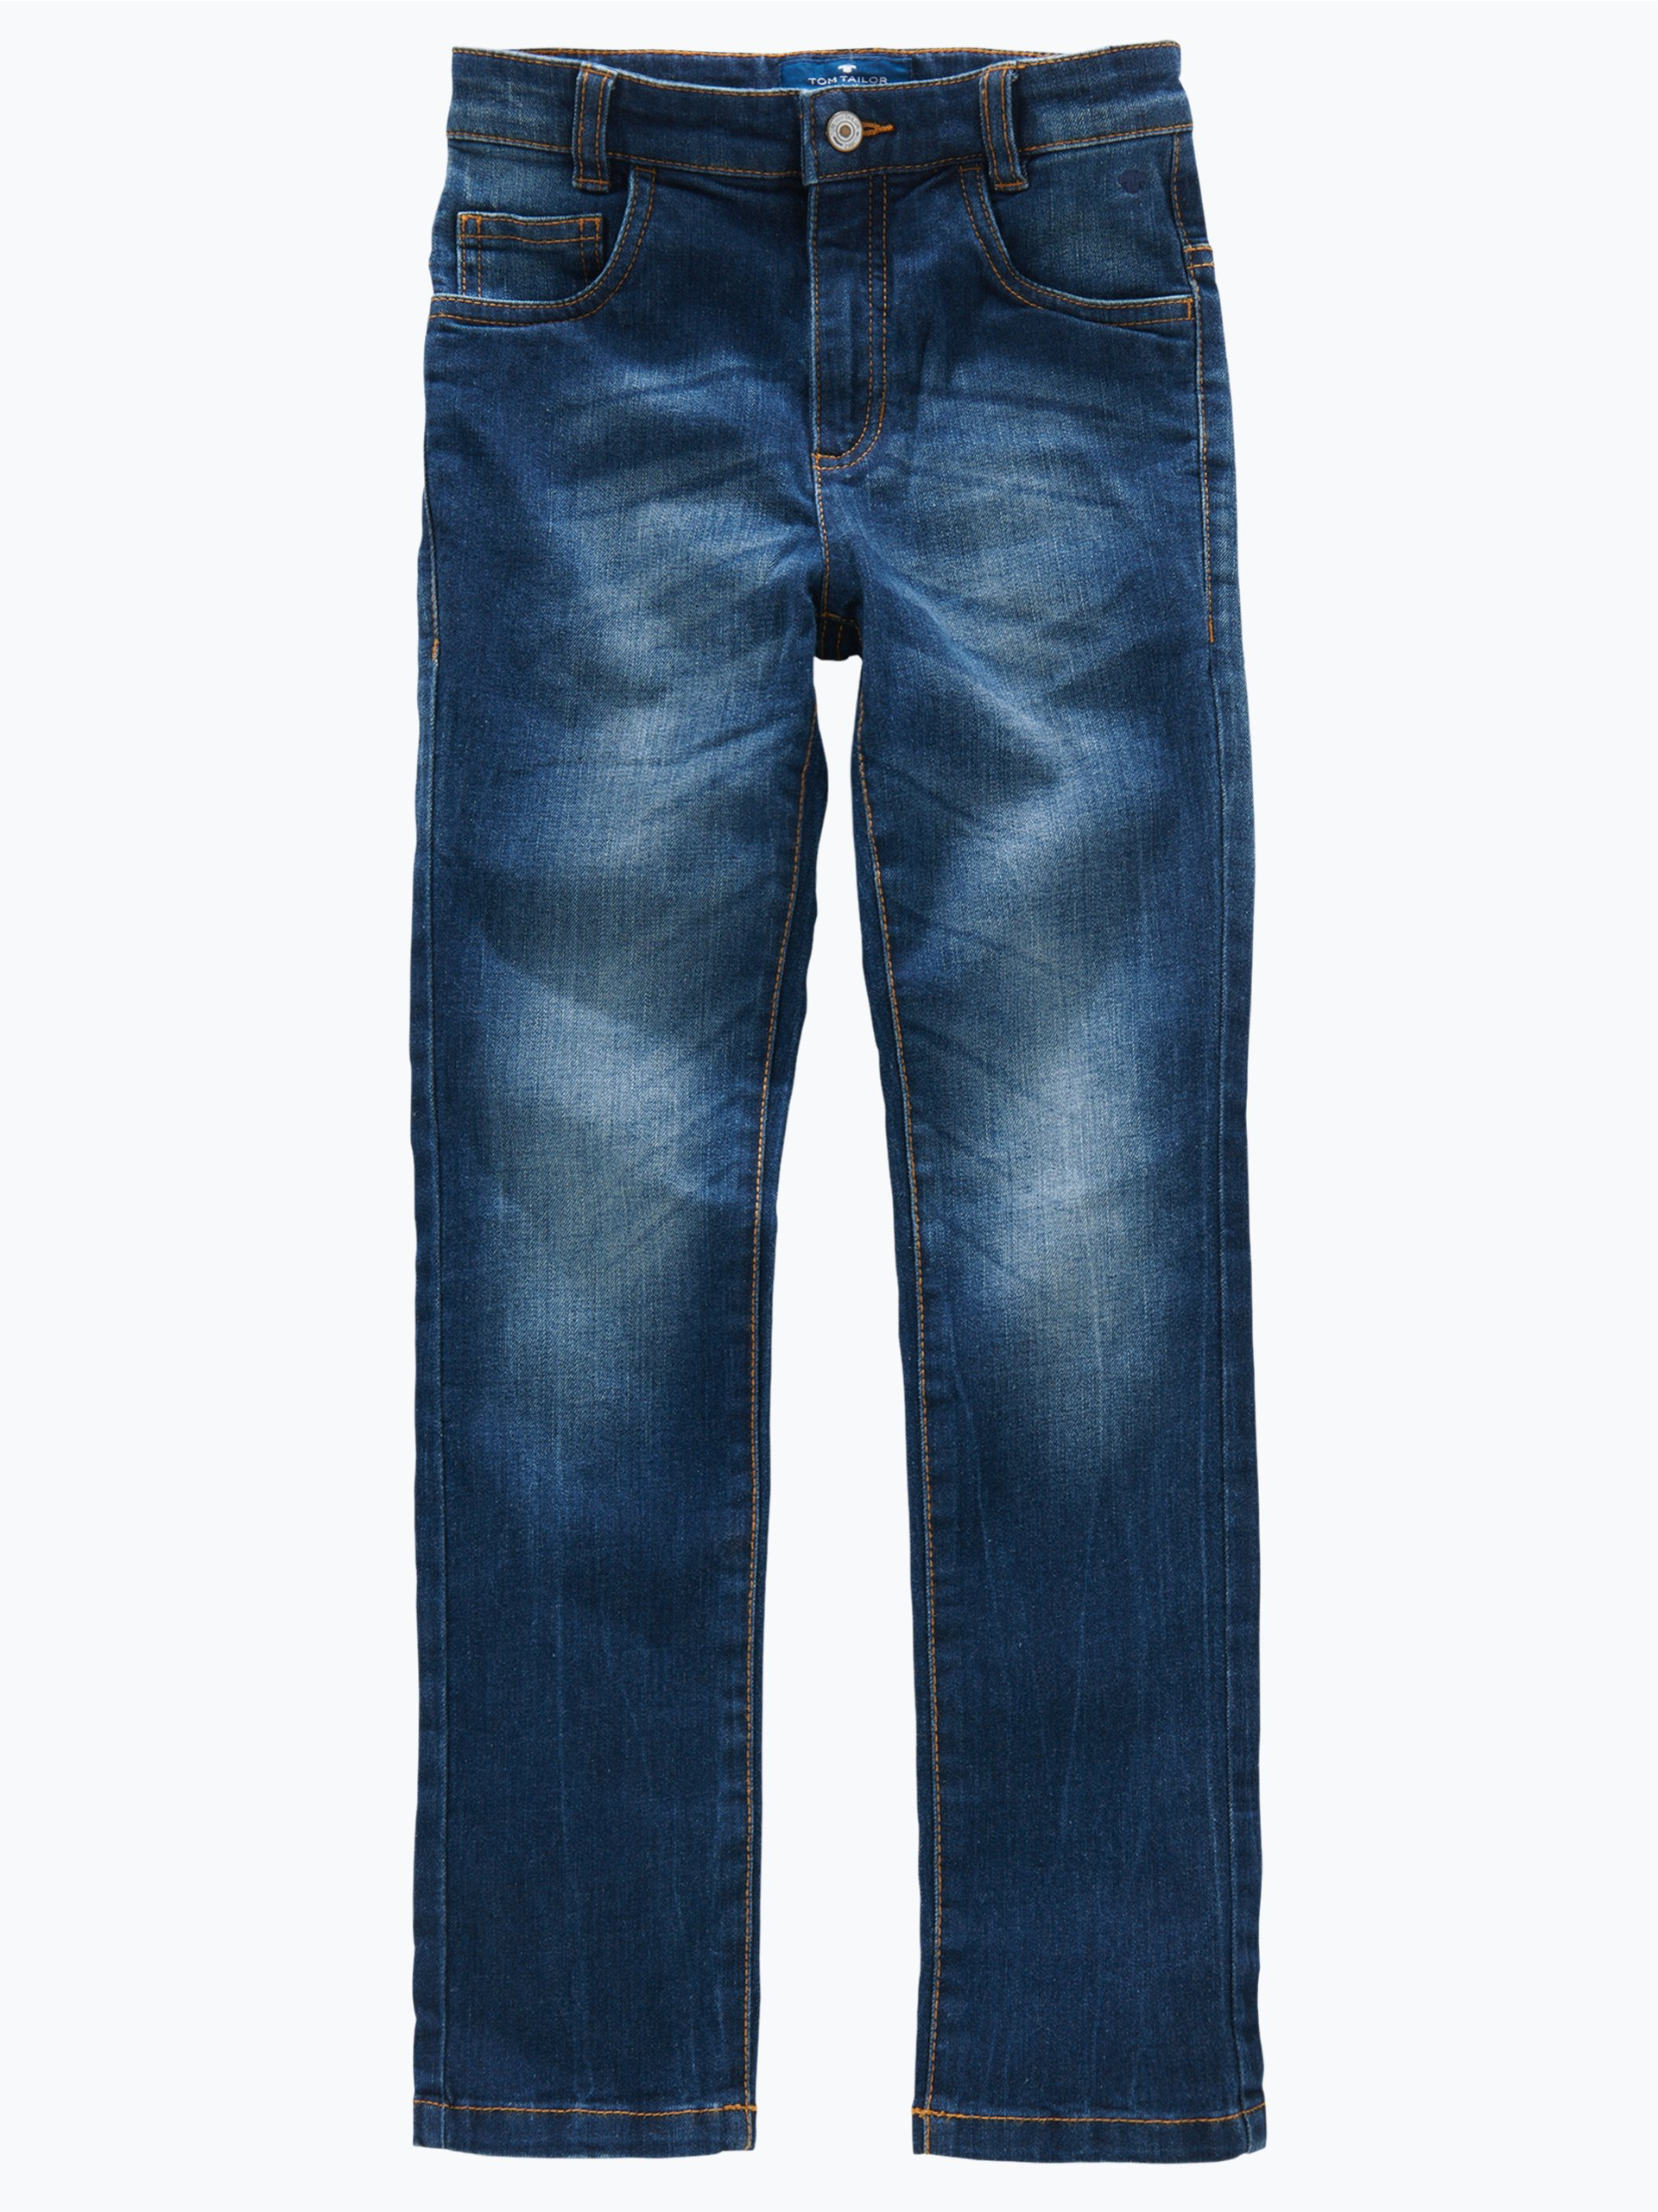 Tom Tailor Jungen Jeans - Matt Skinny Fit